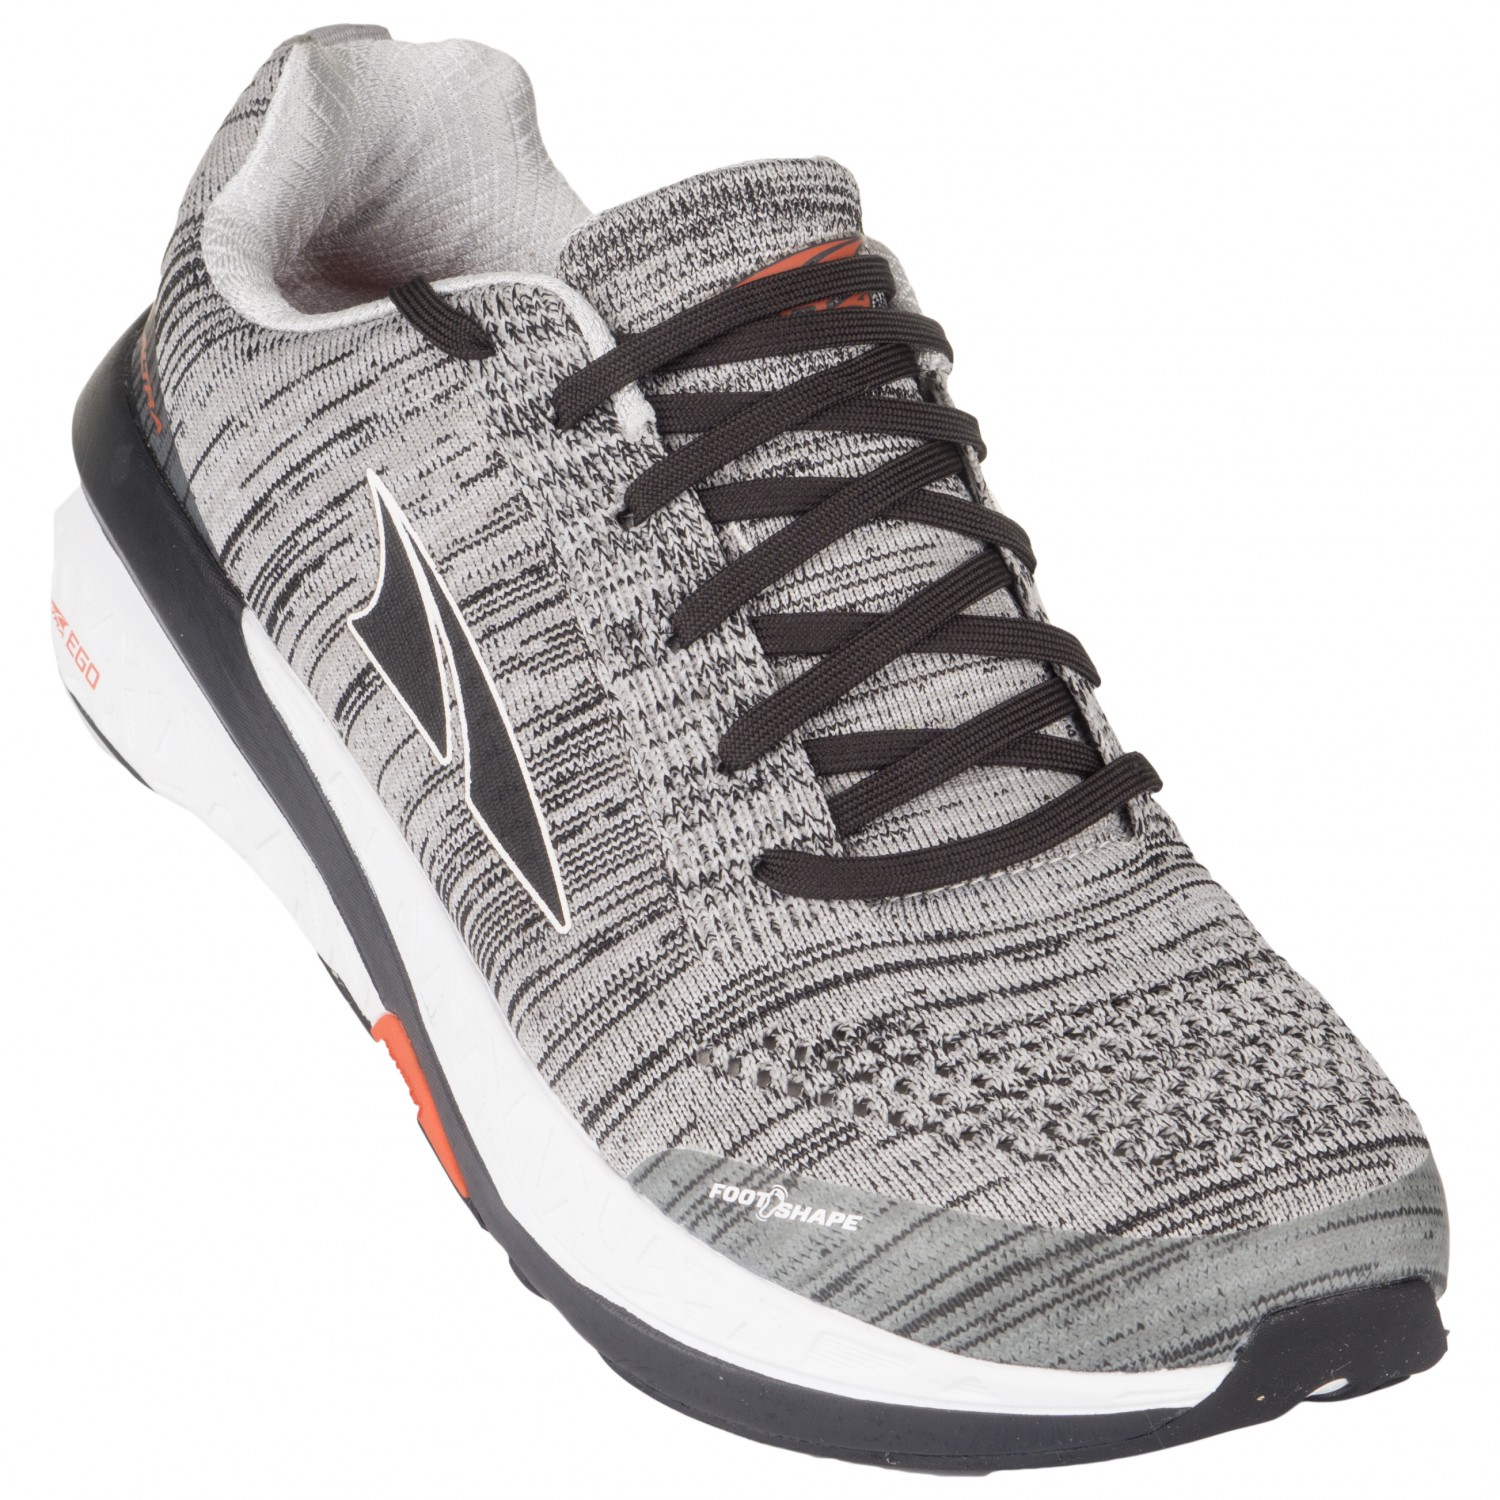 Altra Paradigm 4 - Running Shoes Men's | Free UK Delivery